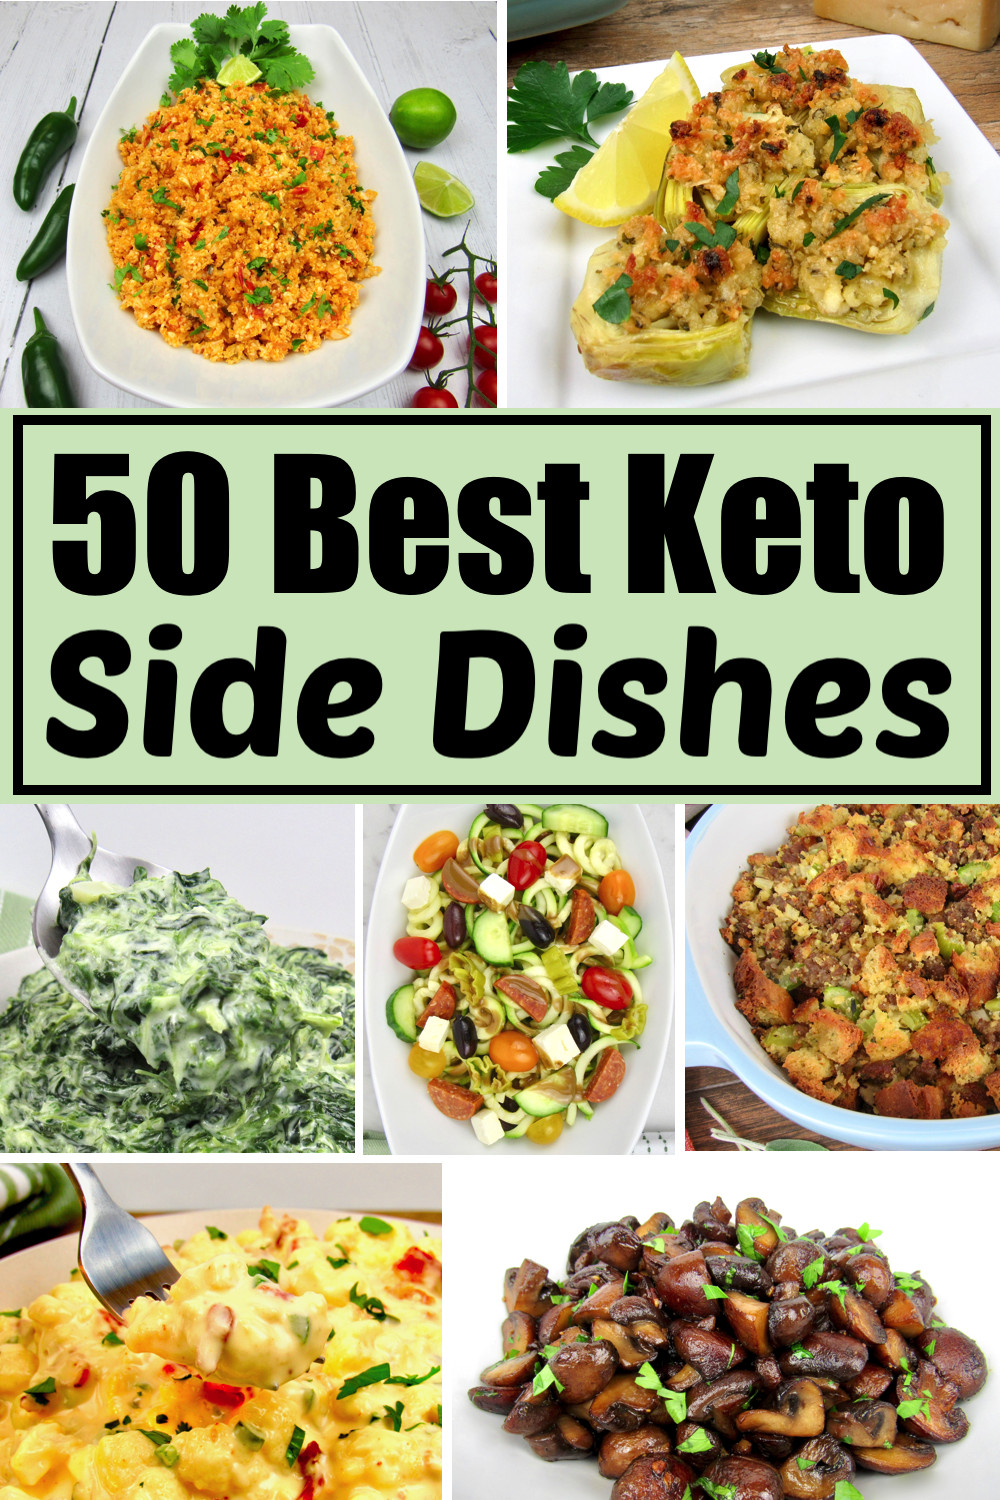 Keto Dinner Side Dishes  25 Best Keto Side Dish Recipes